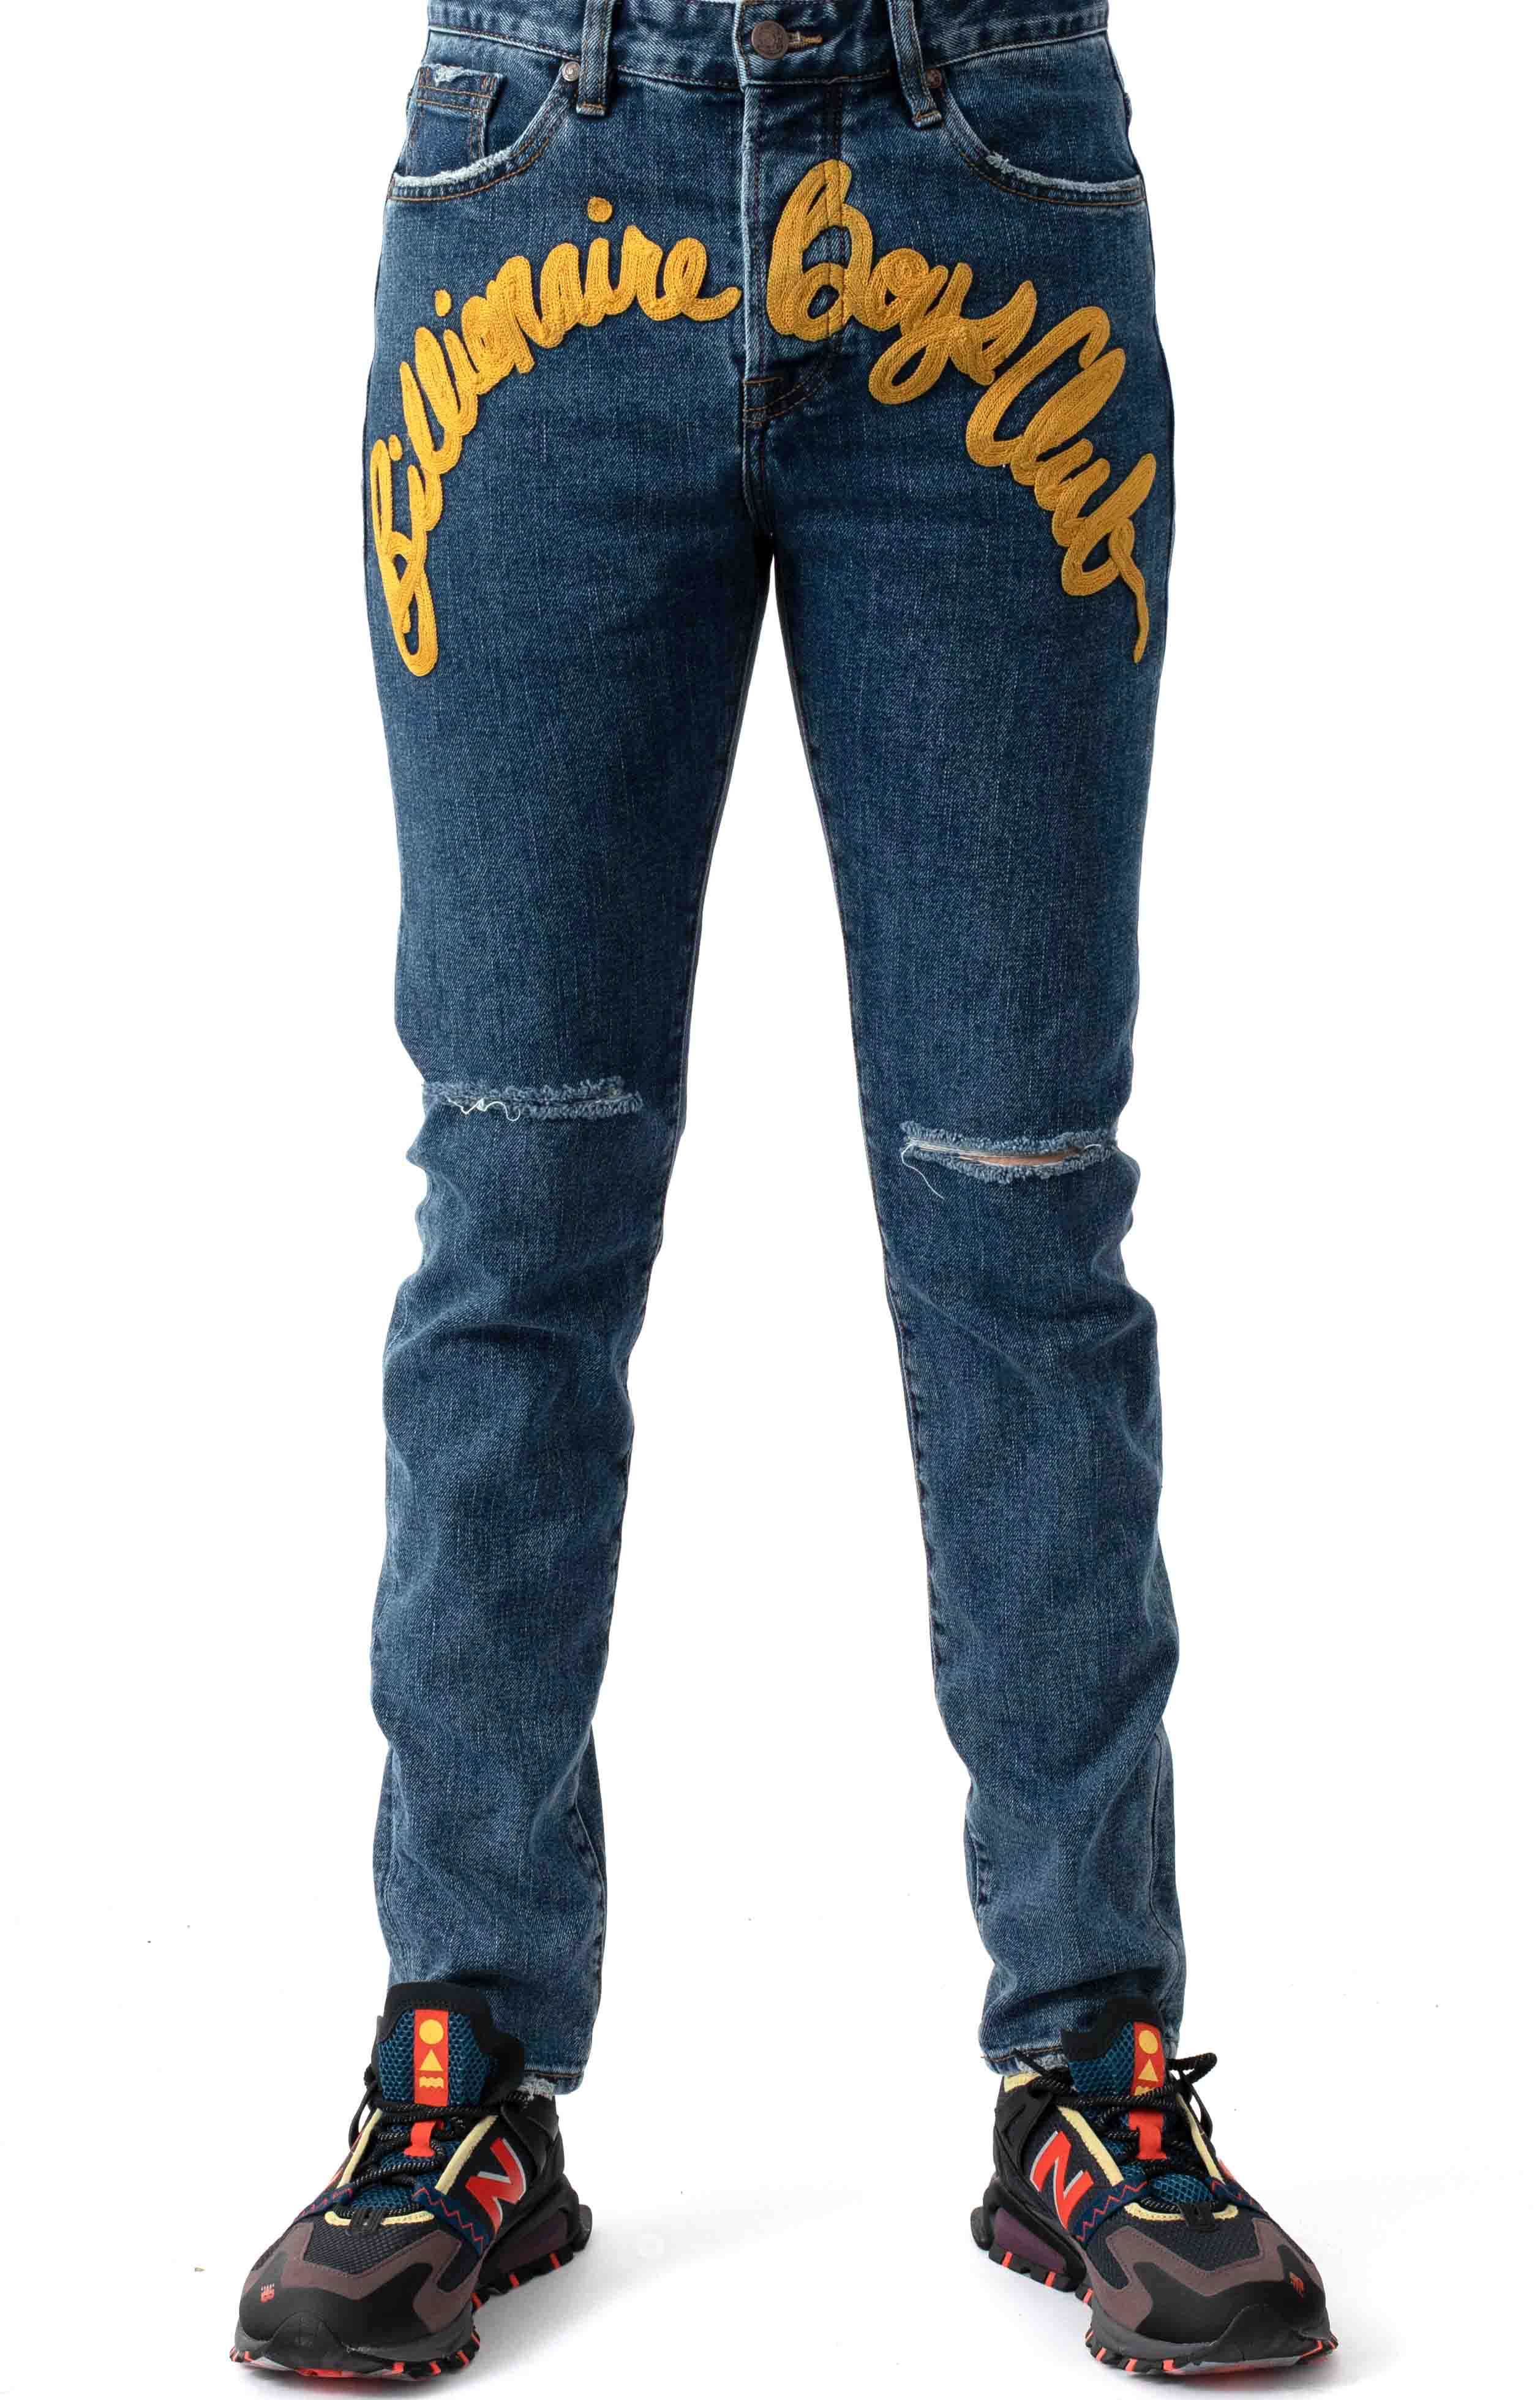 BB Orion Jeans - Solar Flare